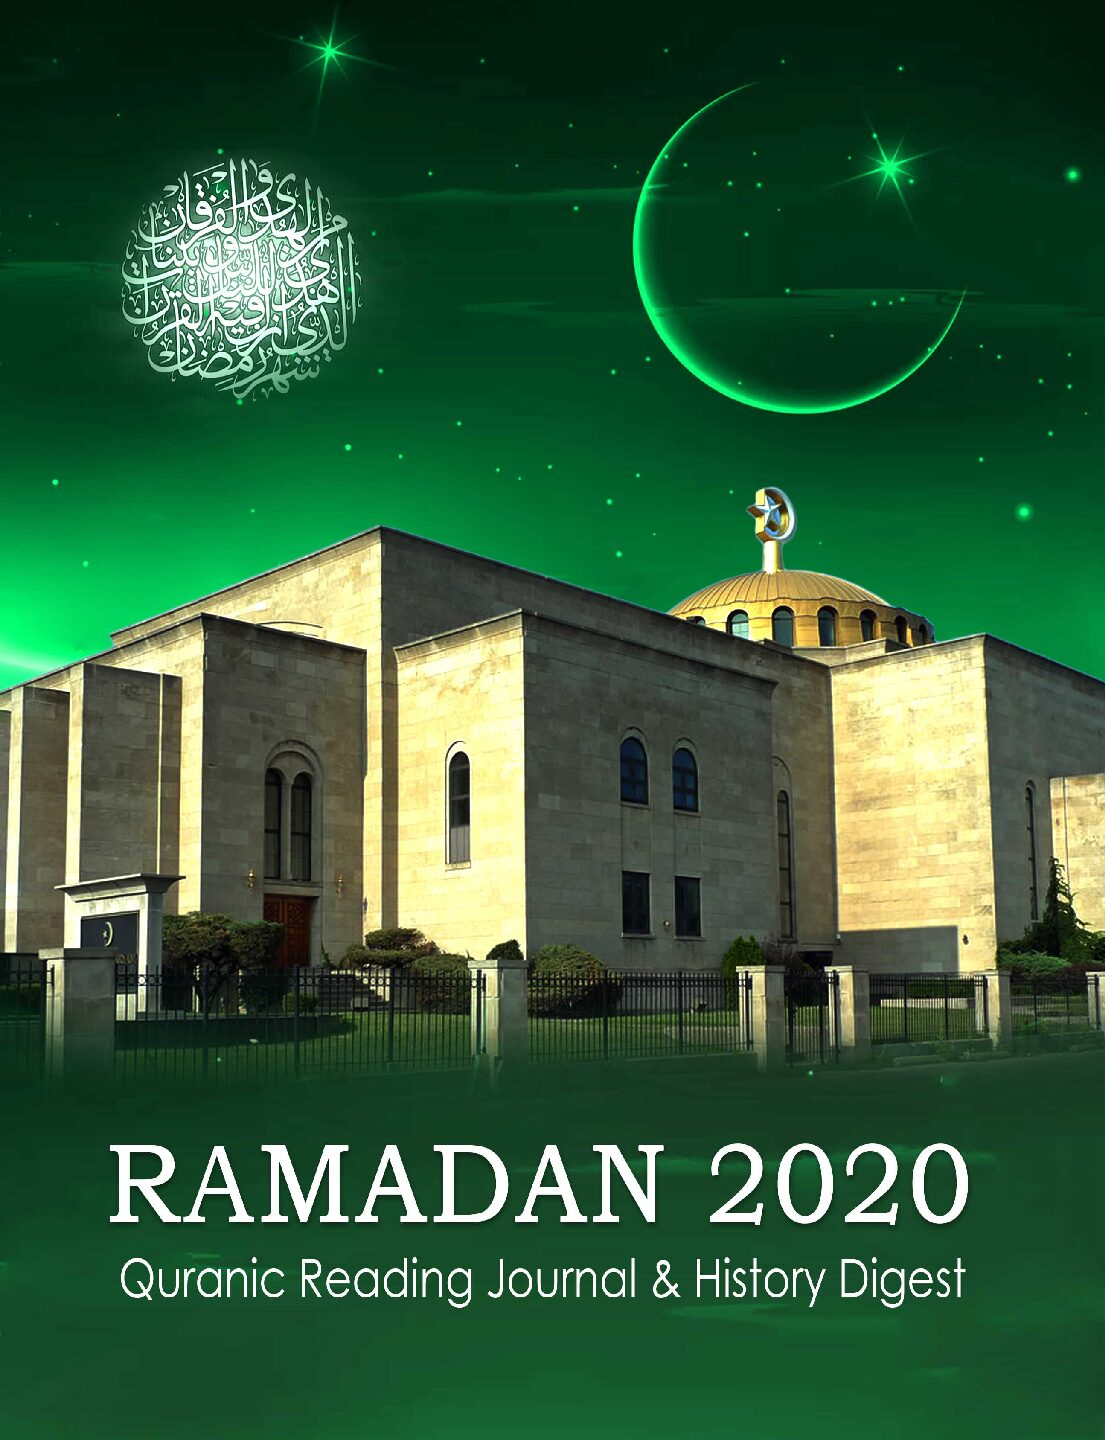 Ramadan 2020 Quranic Reading Journal and History Digest